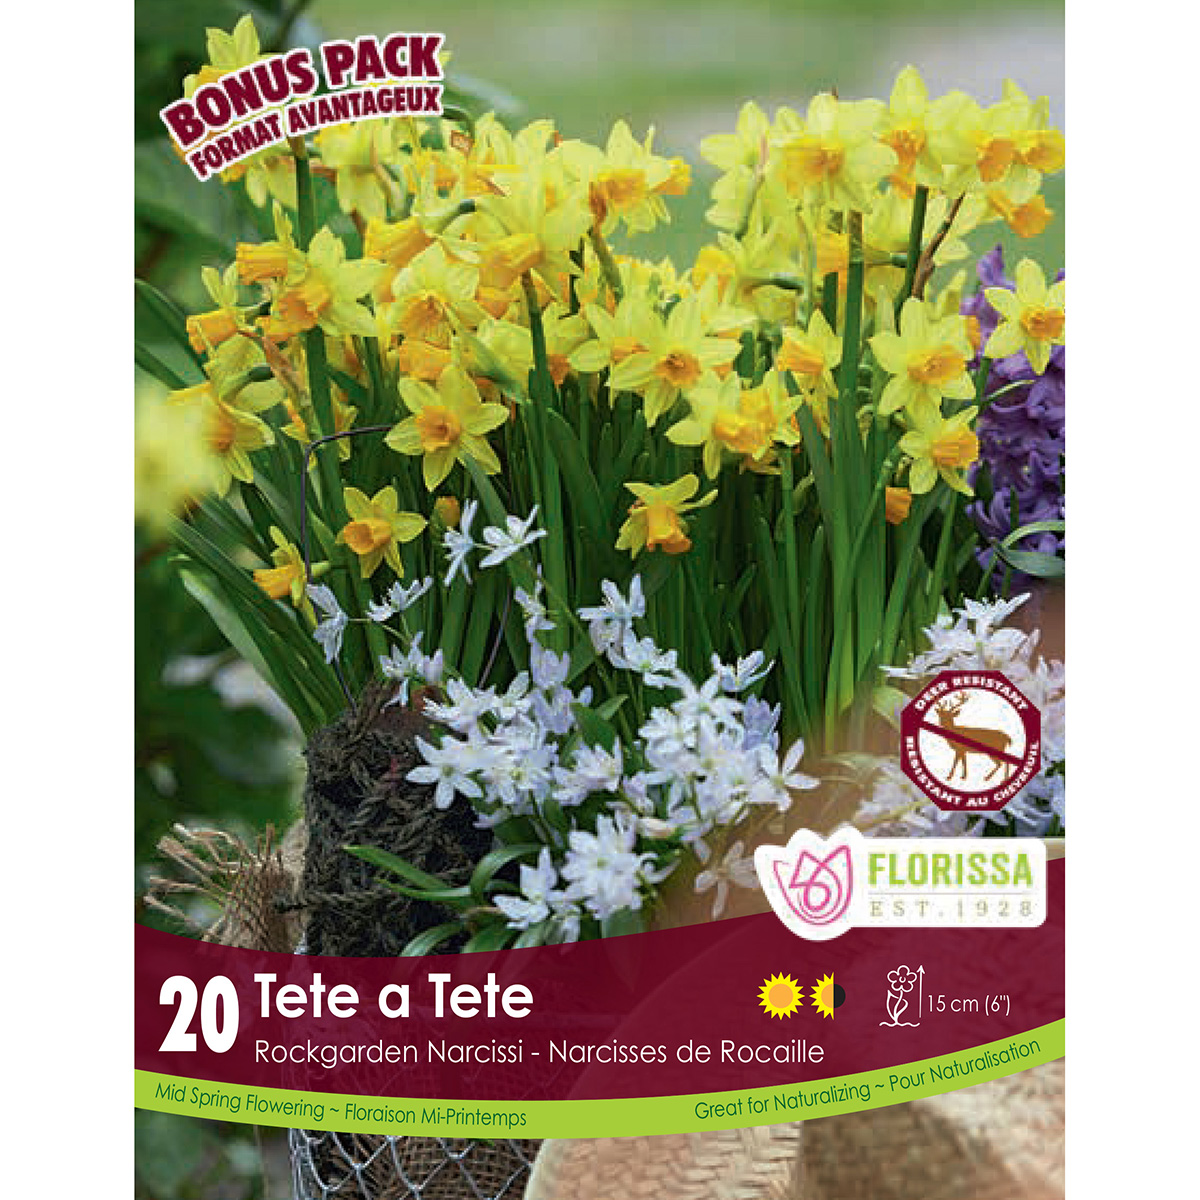 Mammoth Pack Narcissus 'Tete a Tete' Bulbs